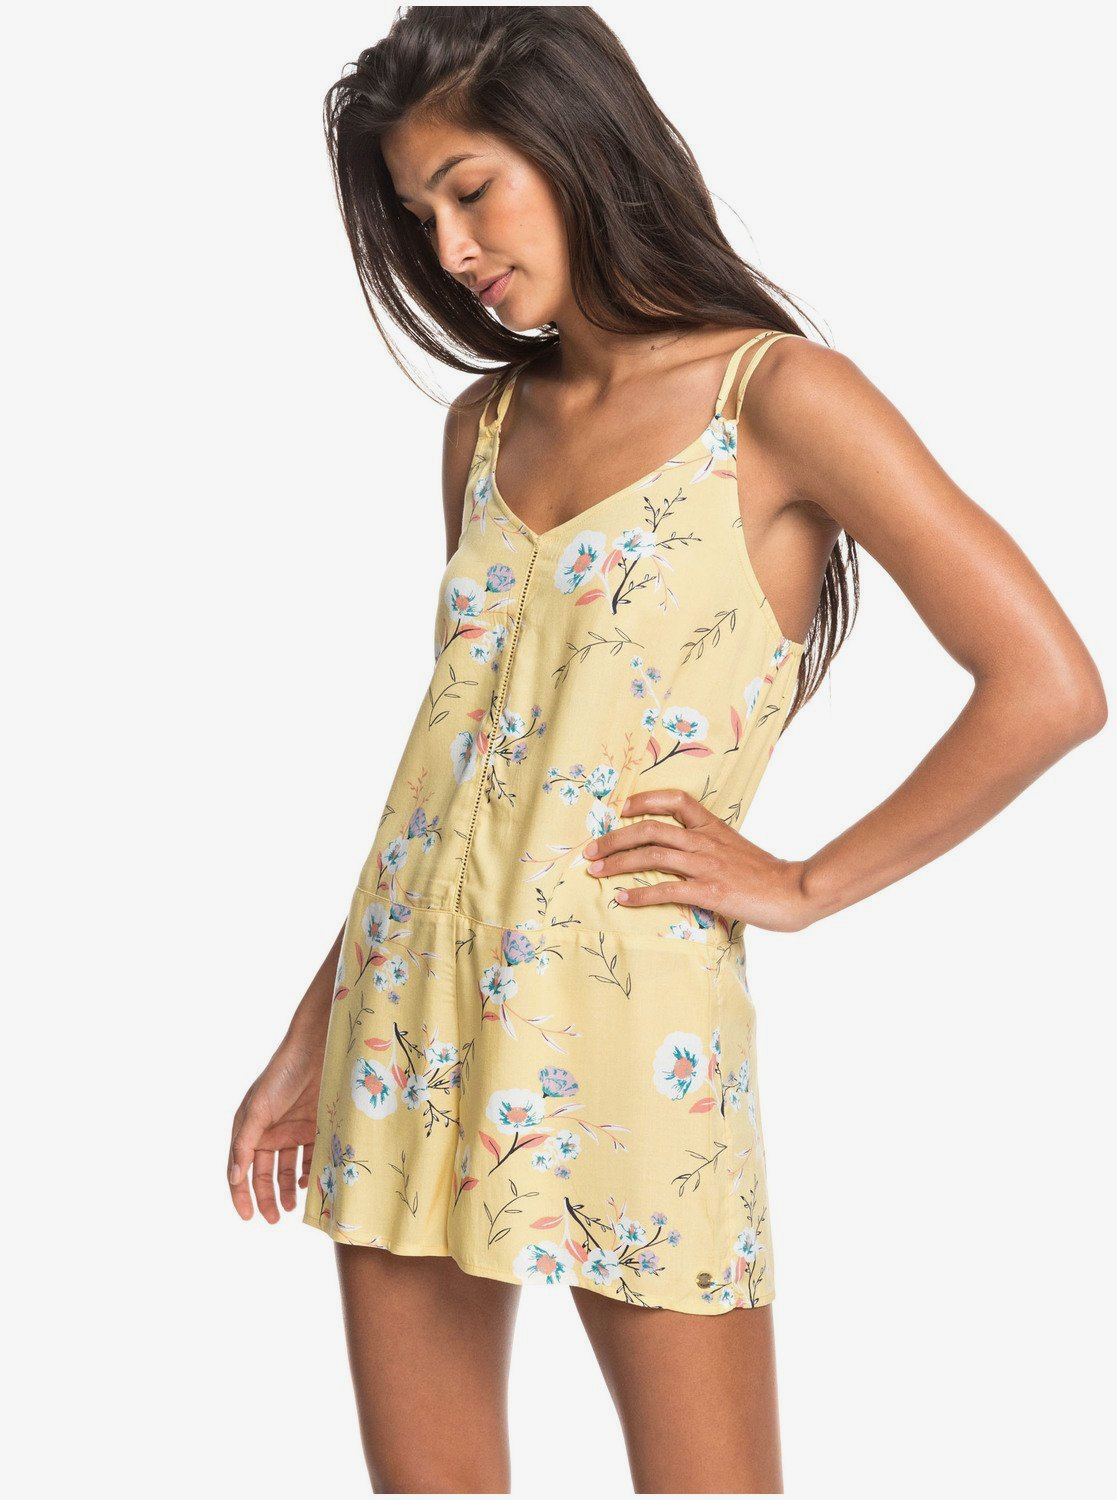 Roxy Blissing Me Strappy Romper